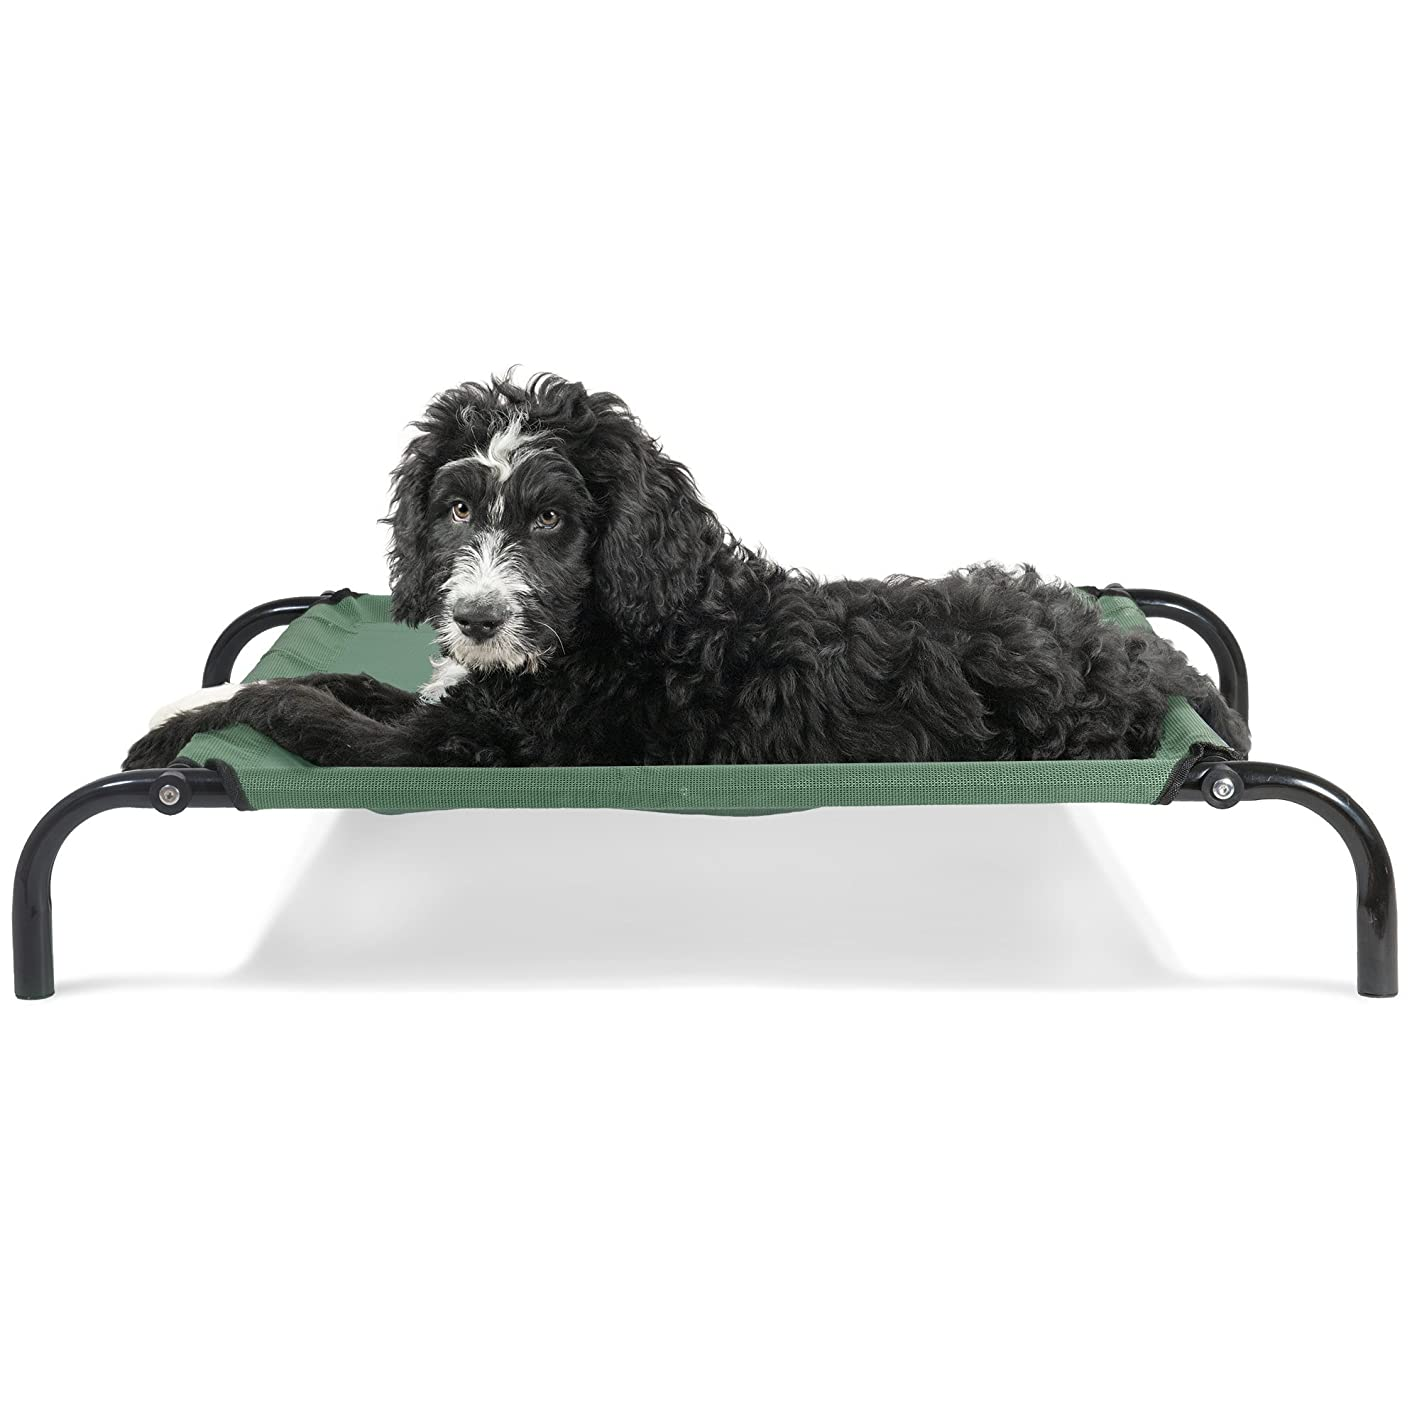 Furhaven Pet Dog Bed | Reinforced Breathable Cooling Mesh Elevated Pet Cot Bed for Dogs & Cats - Available in Multiple Colors & Sizes